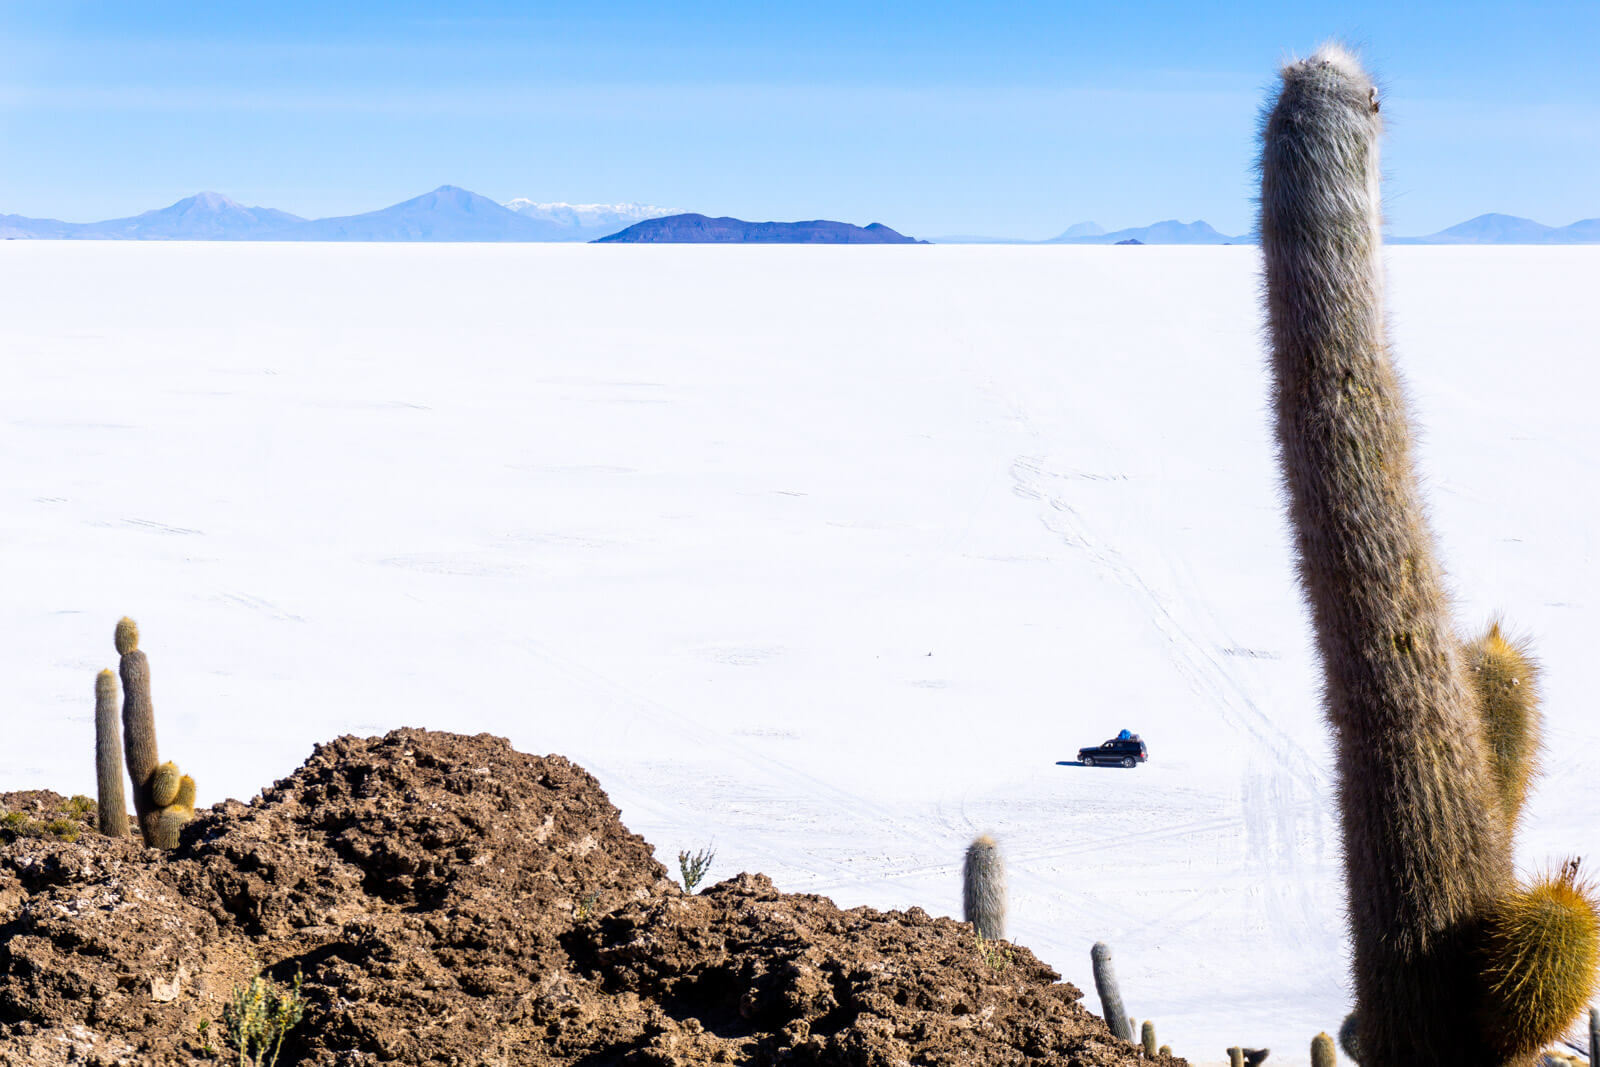 The view from the top of Incahuasi Island at the Salar de Uyuni